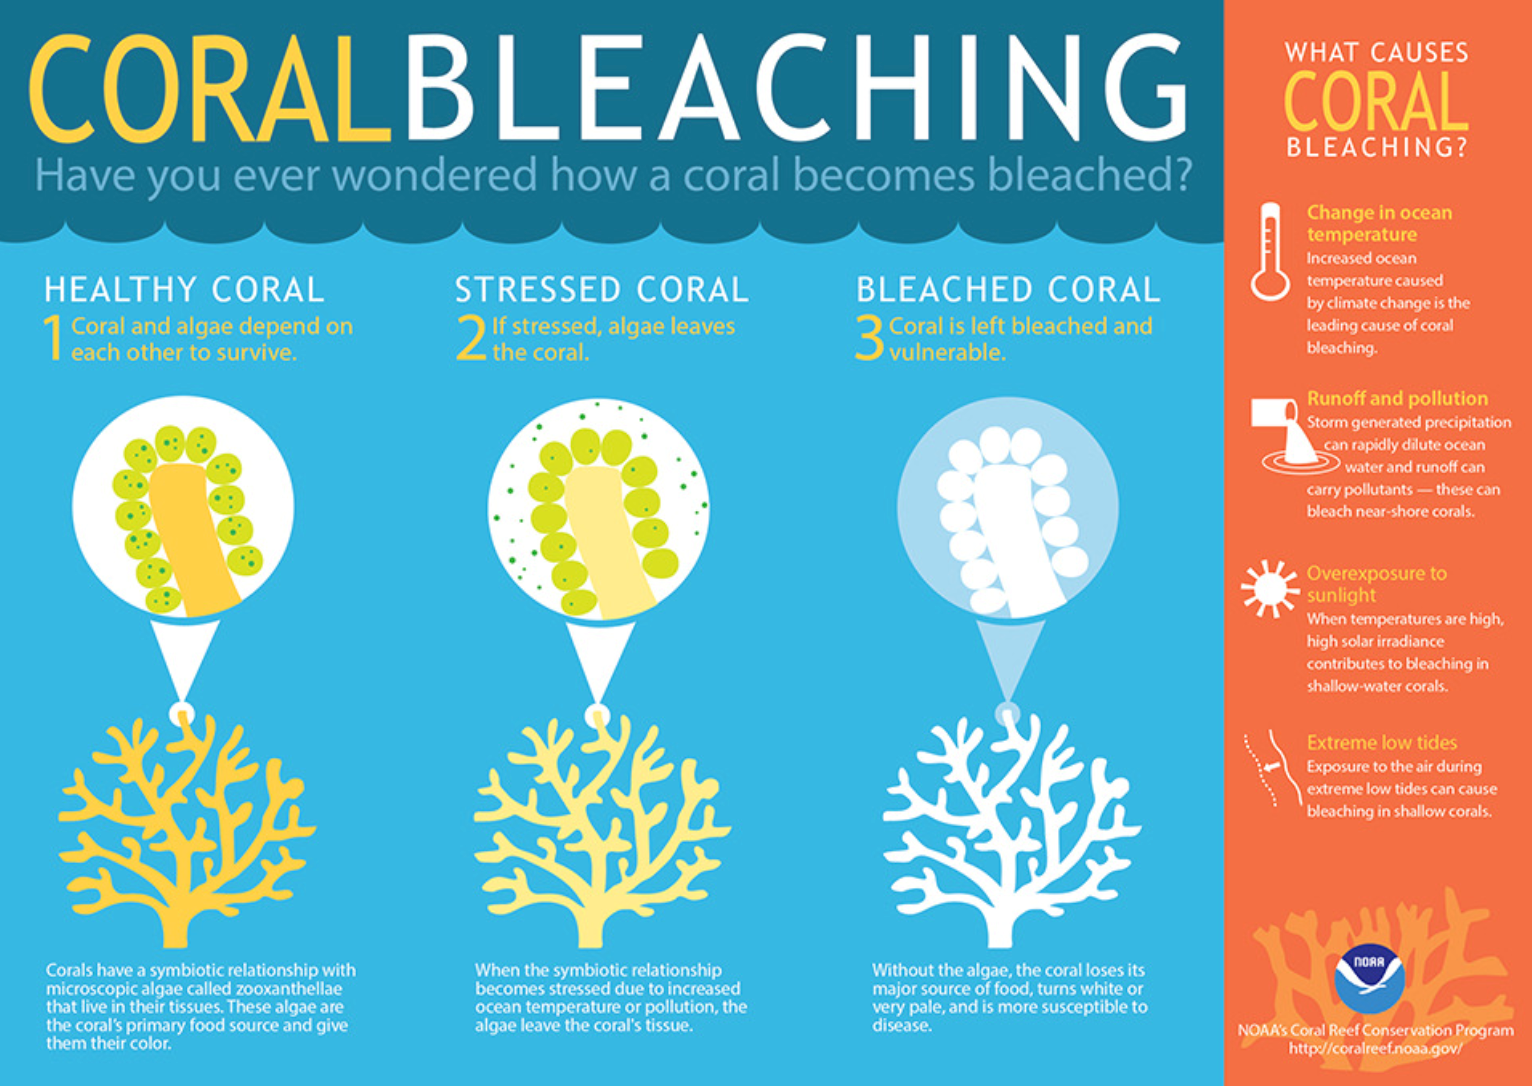 Coral is sensitive to changes in temperature, light or nutrients